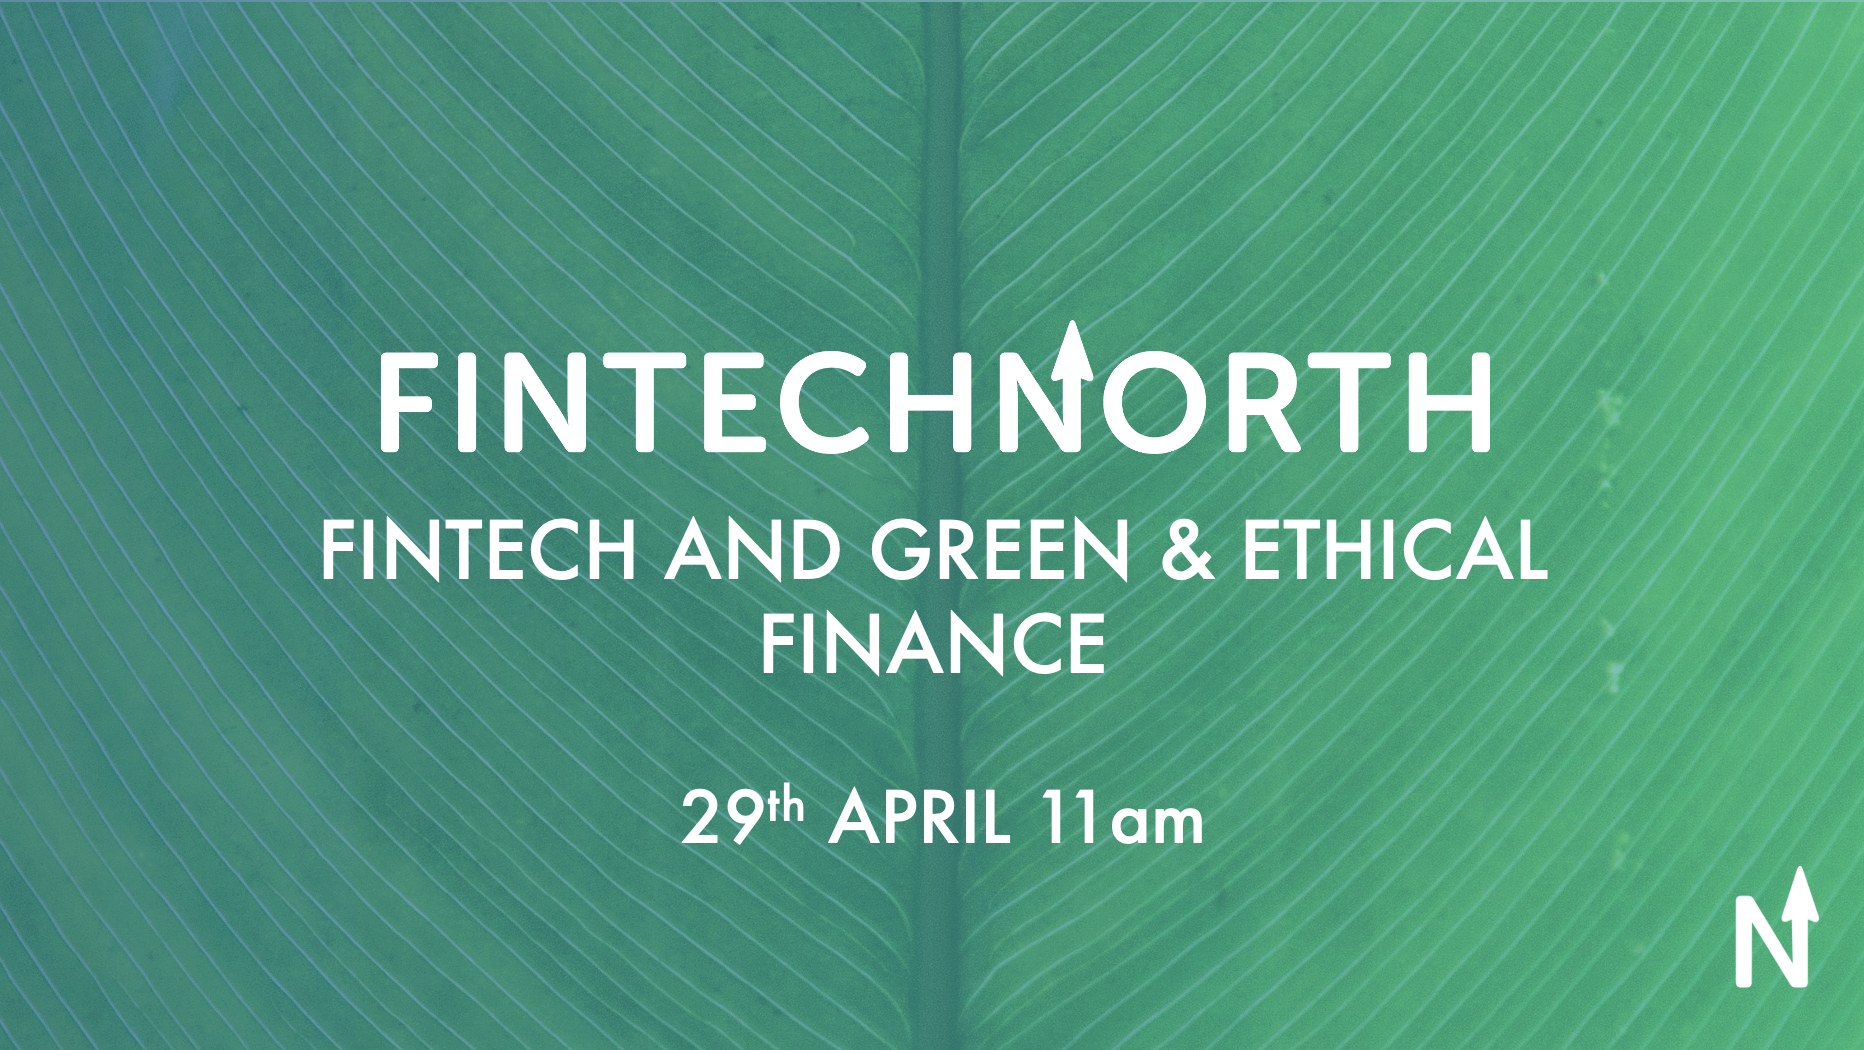 FinTech and Green & Ethical Finance